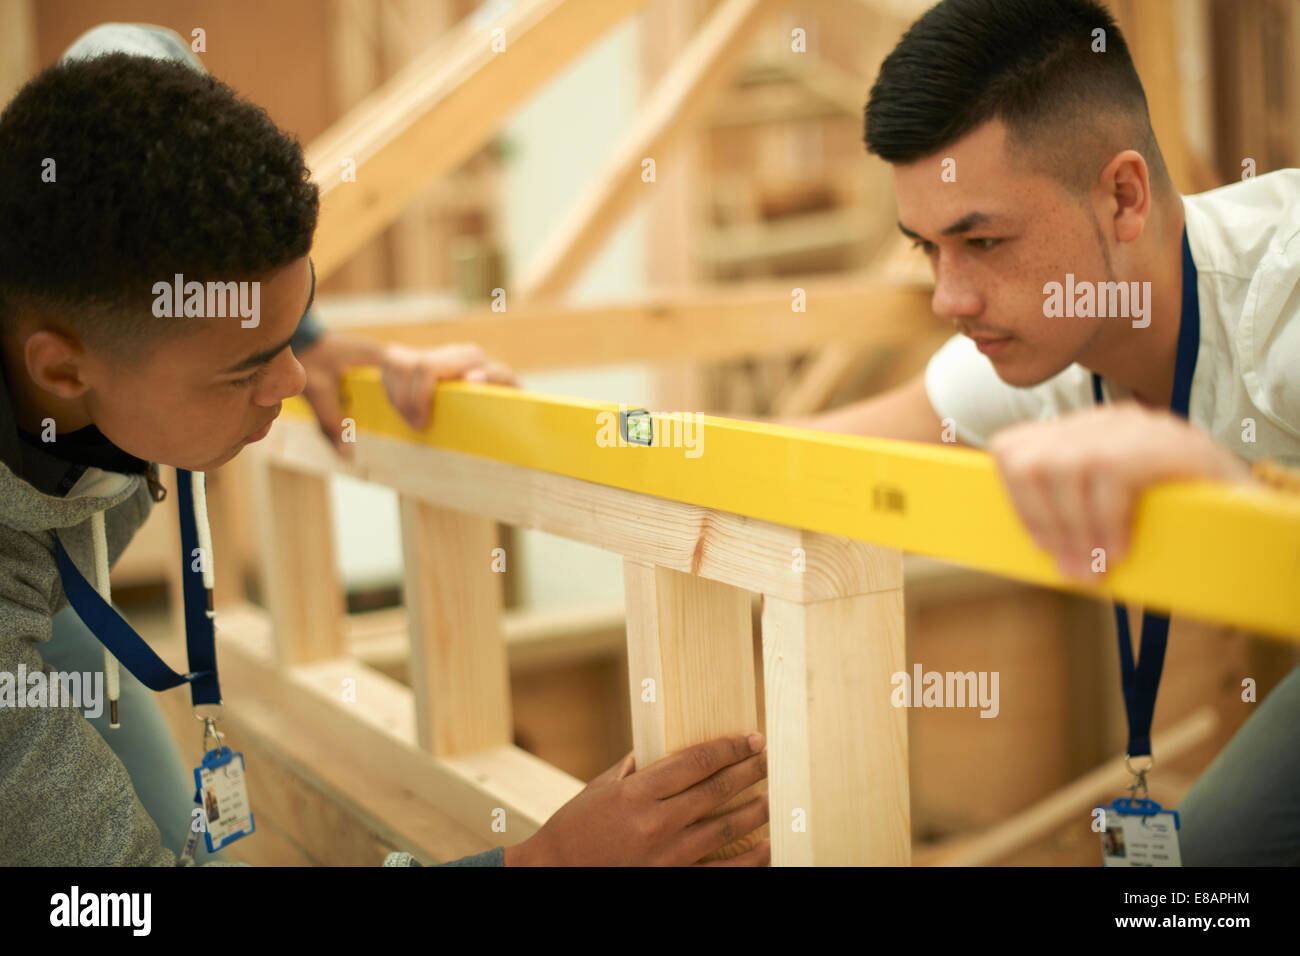 Two male college students using spirit level on frame in woodworking workshop - Stock Image